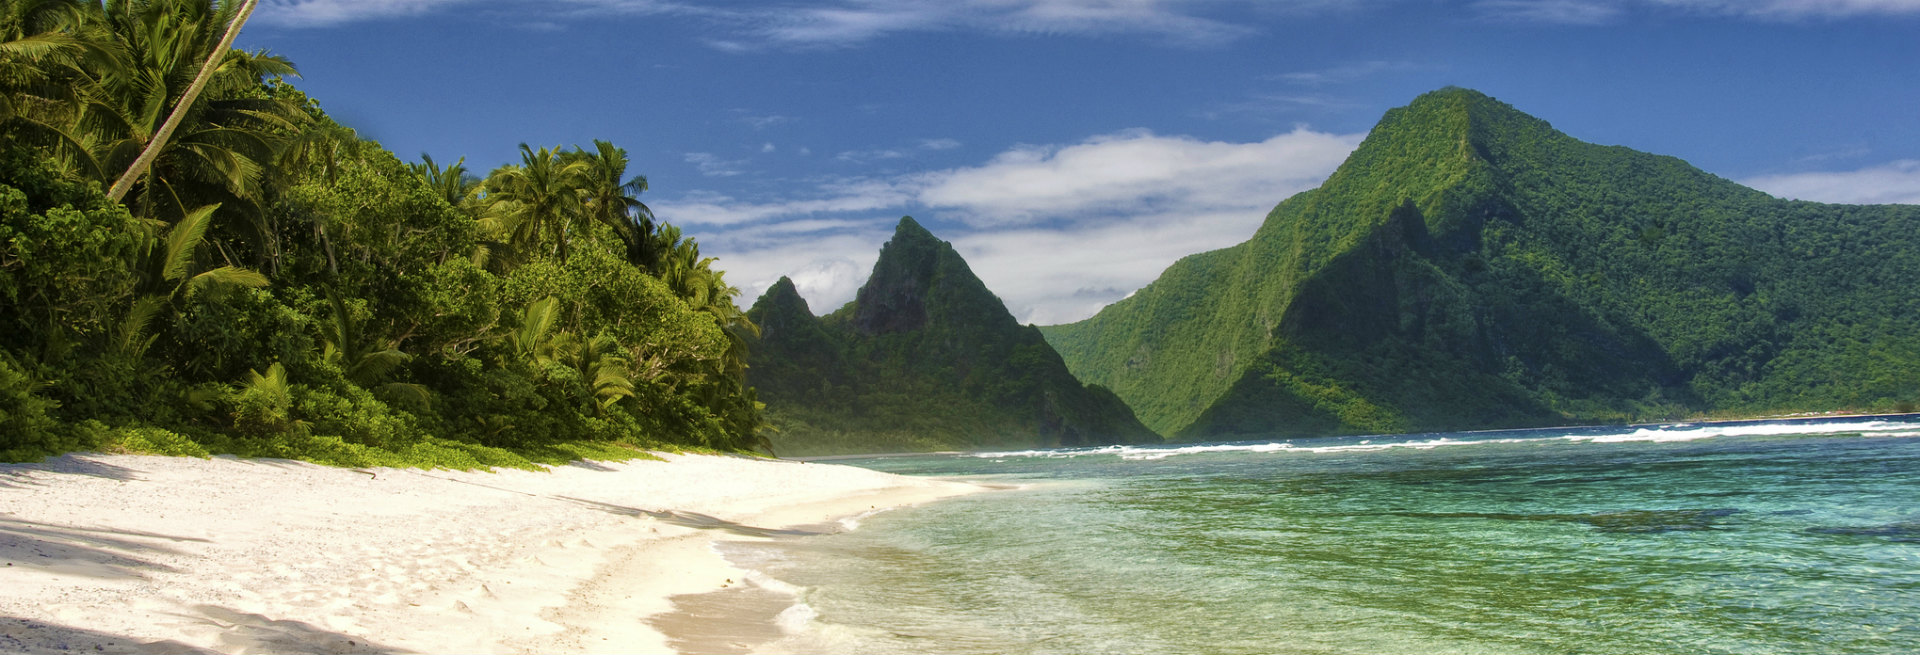 Green Trees And Mountain Loom Over The Sandy Beach At National Park Of  American Samoa.